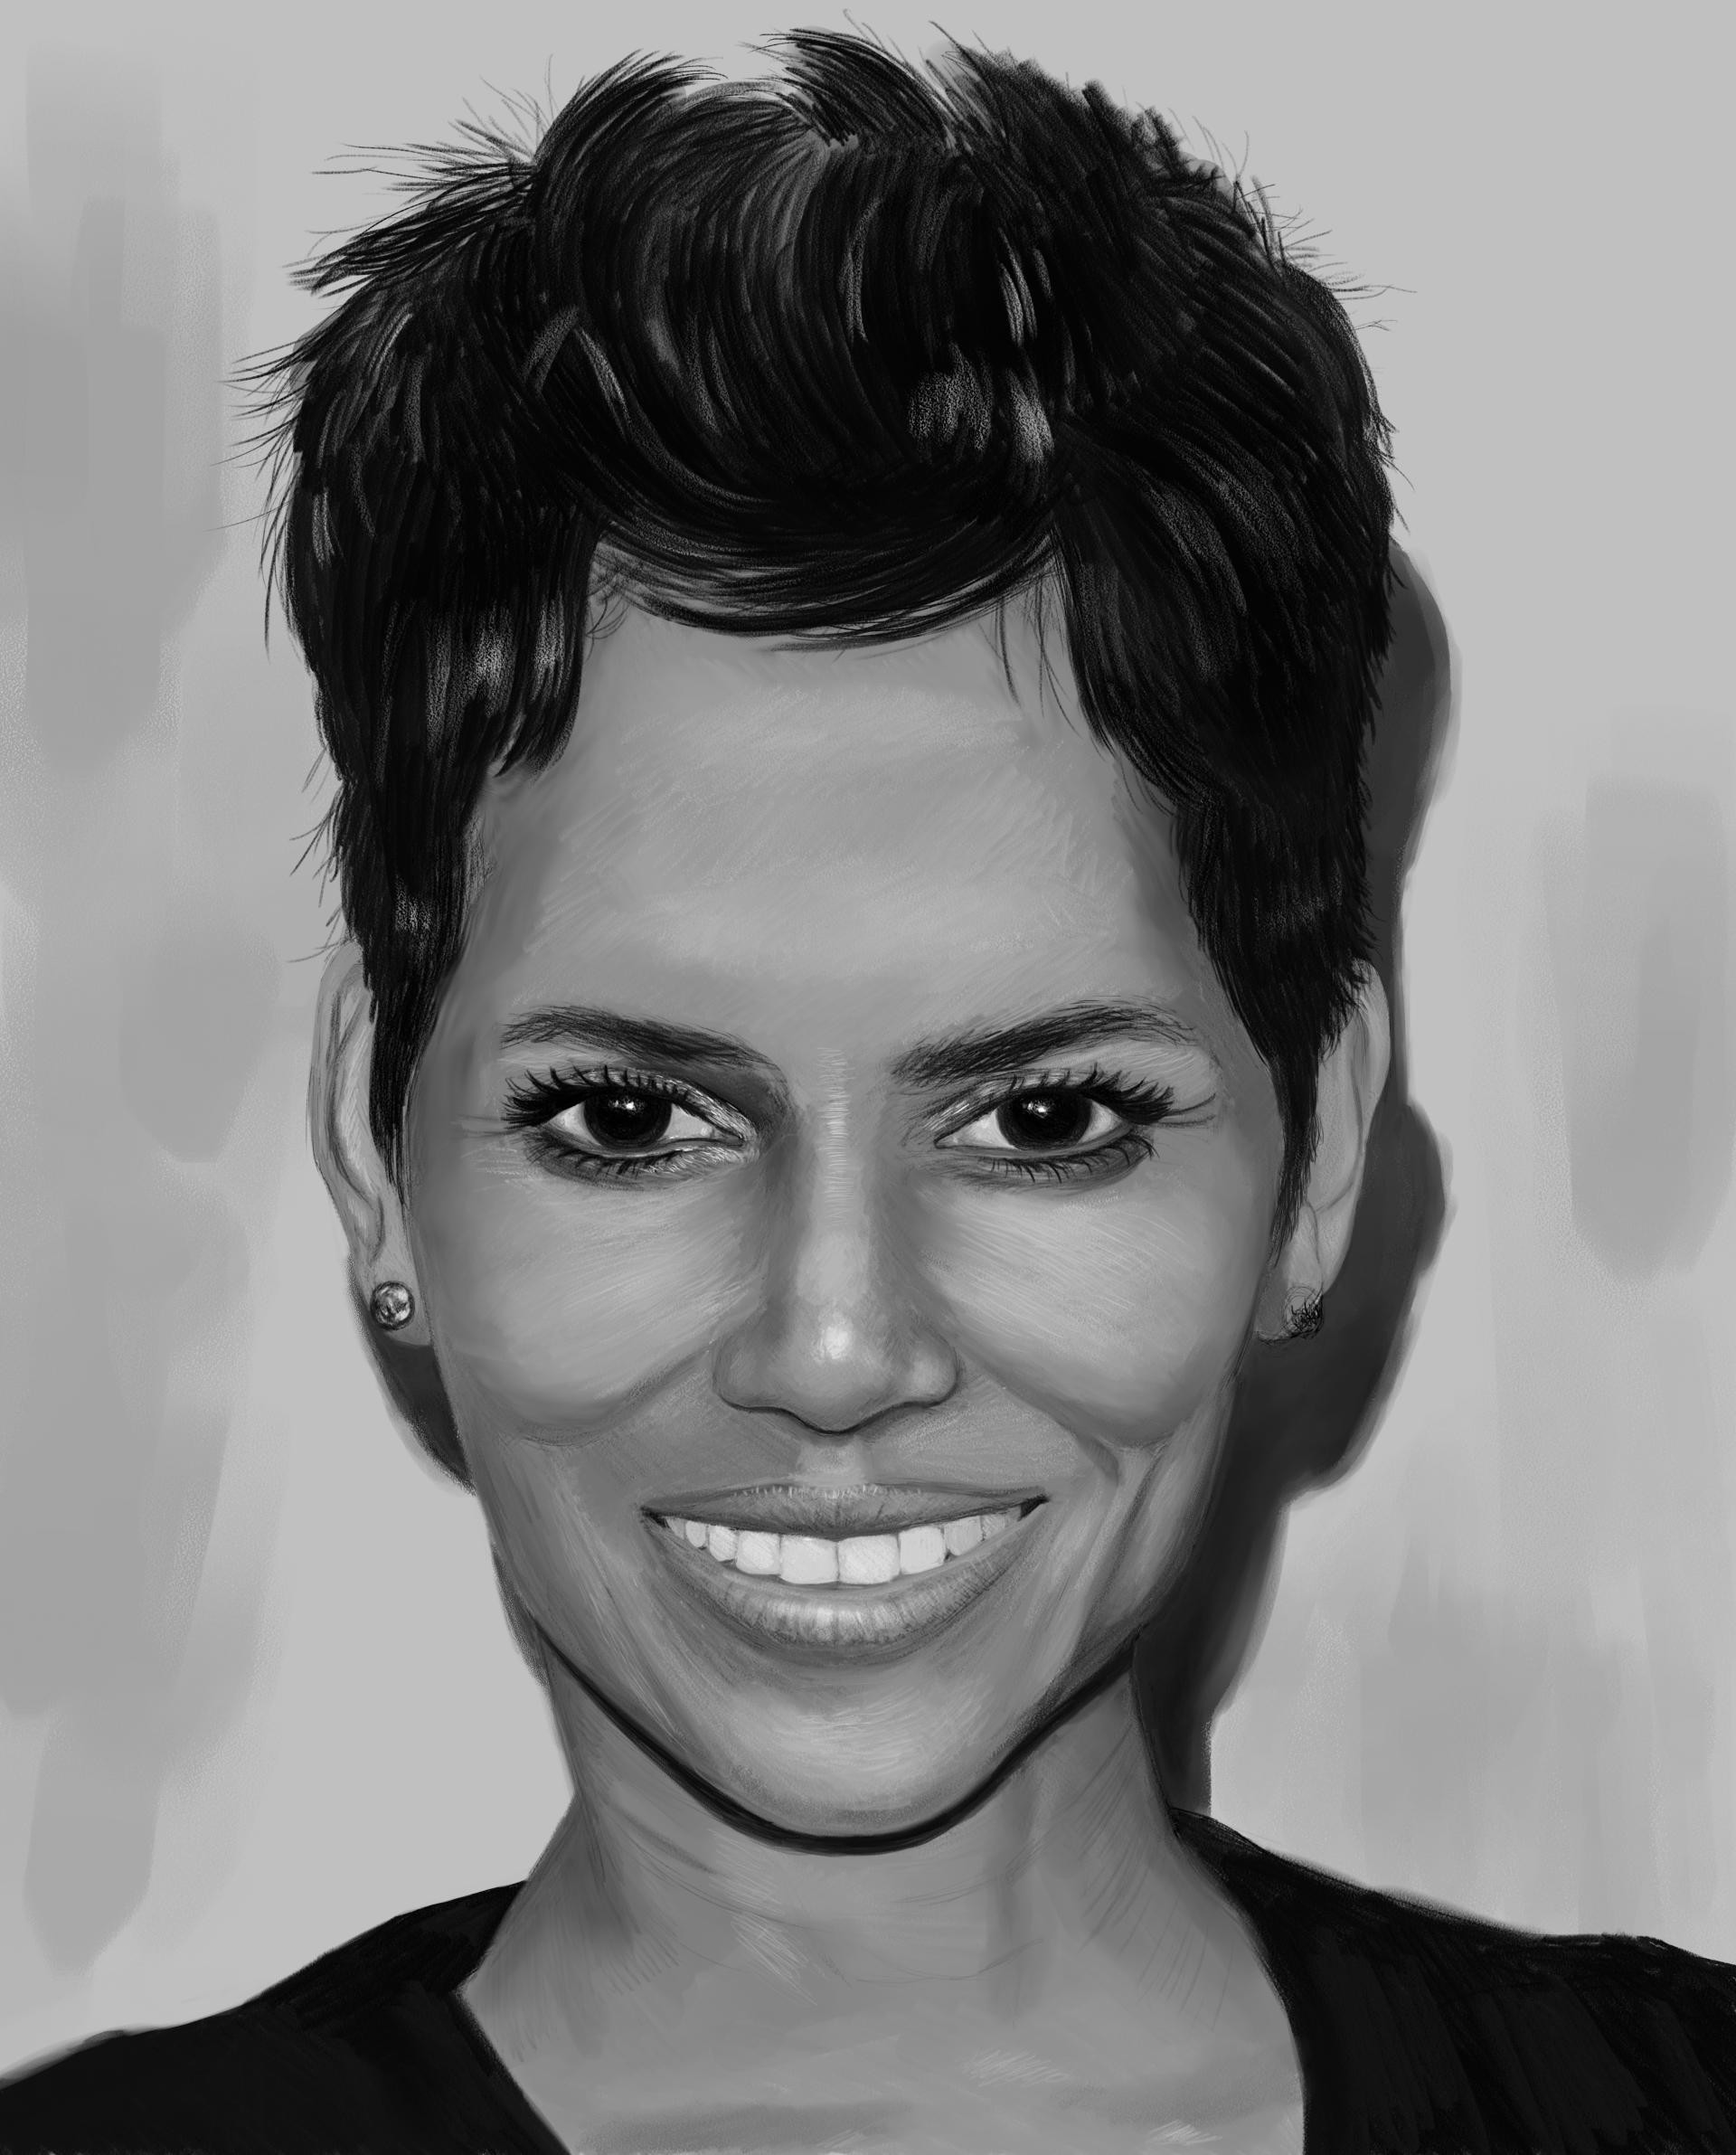 Mauro lira halle berry 004 1920wide